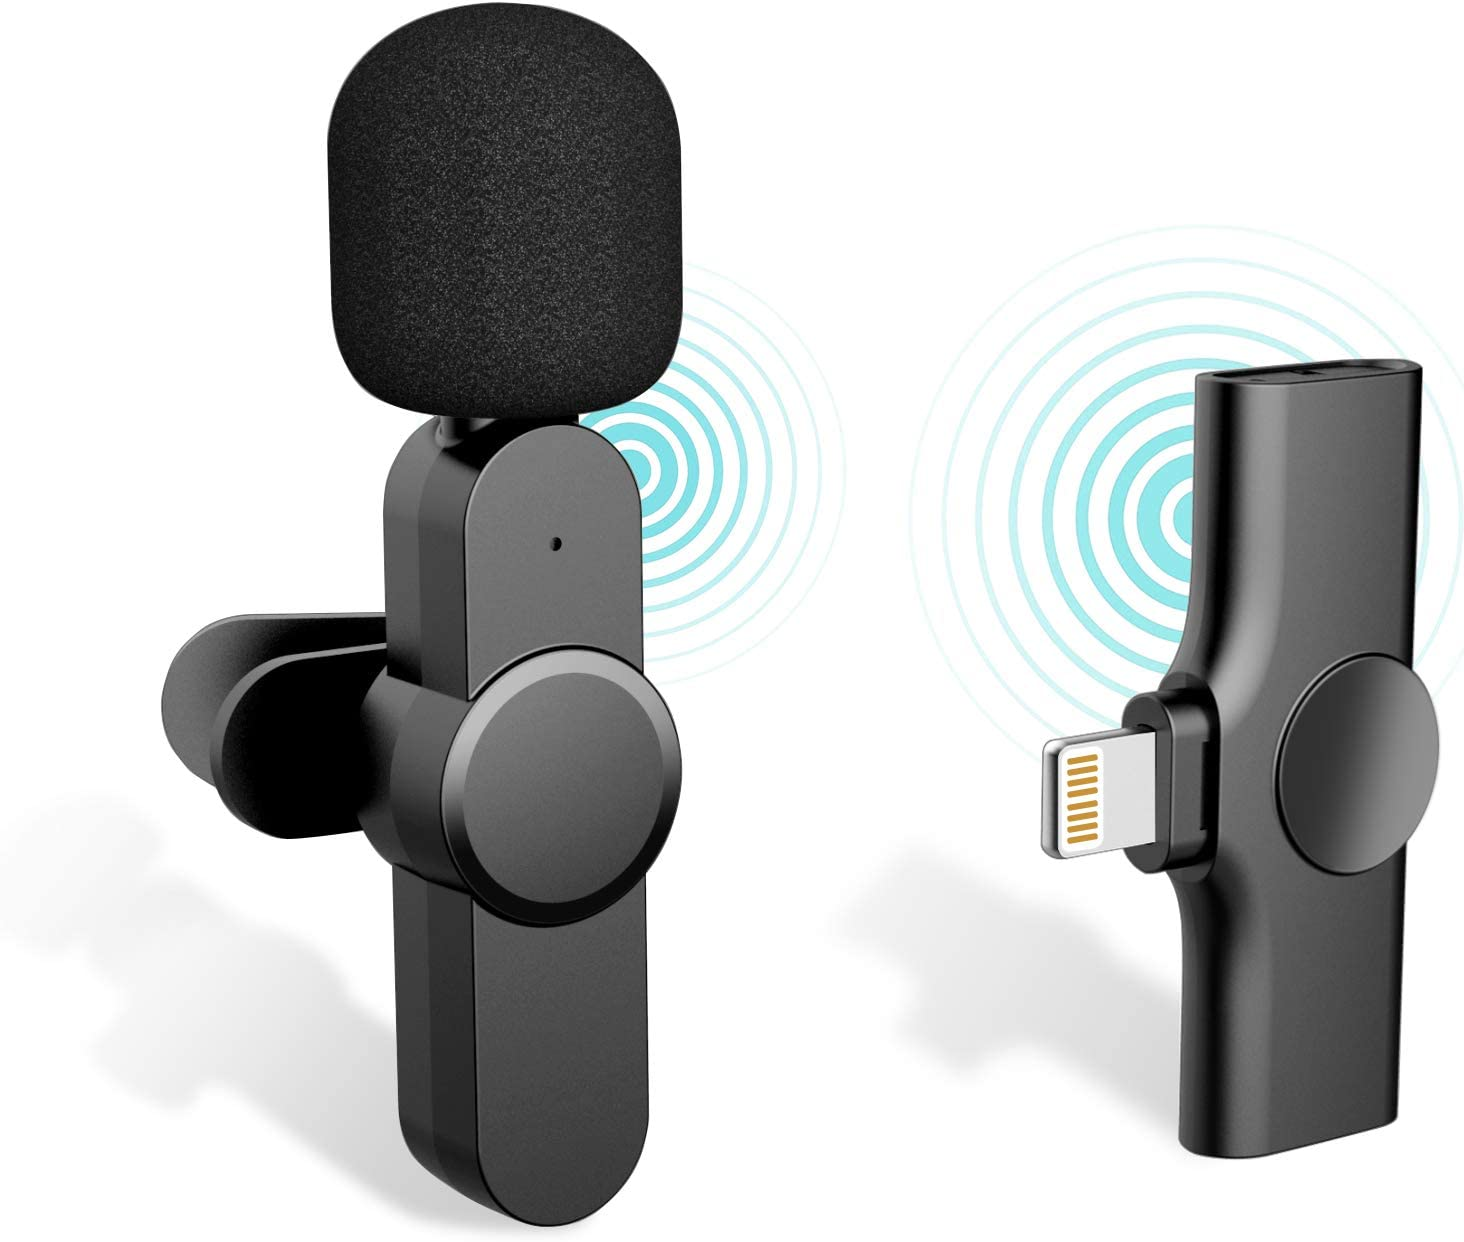 Plug-Play iPhone Lapel Microphone for Youtubers,Facebook Live Stream,iDiskk Lightning Wireless Mic for iPhone iPad,Auto-syncs Mic for Vloggers,Interview (NO APP or Bluetooth Needed)